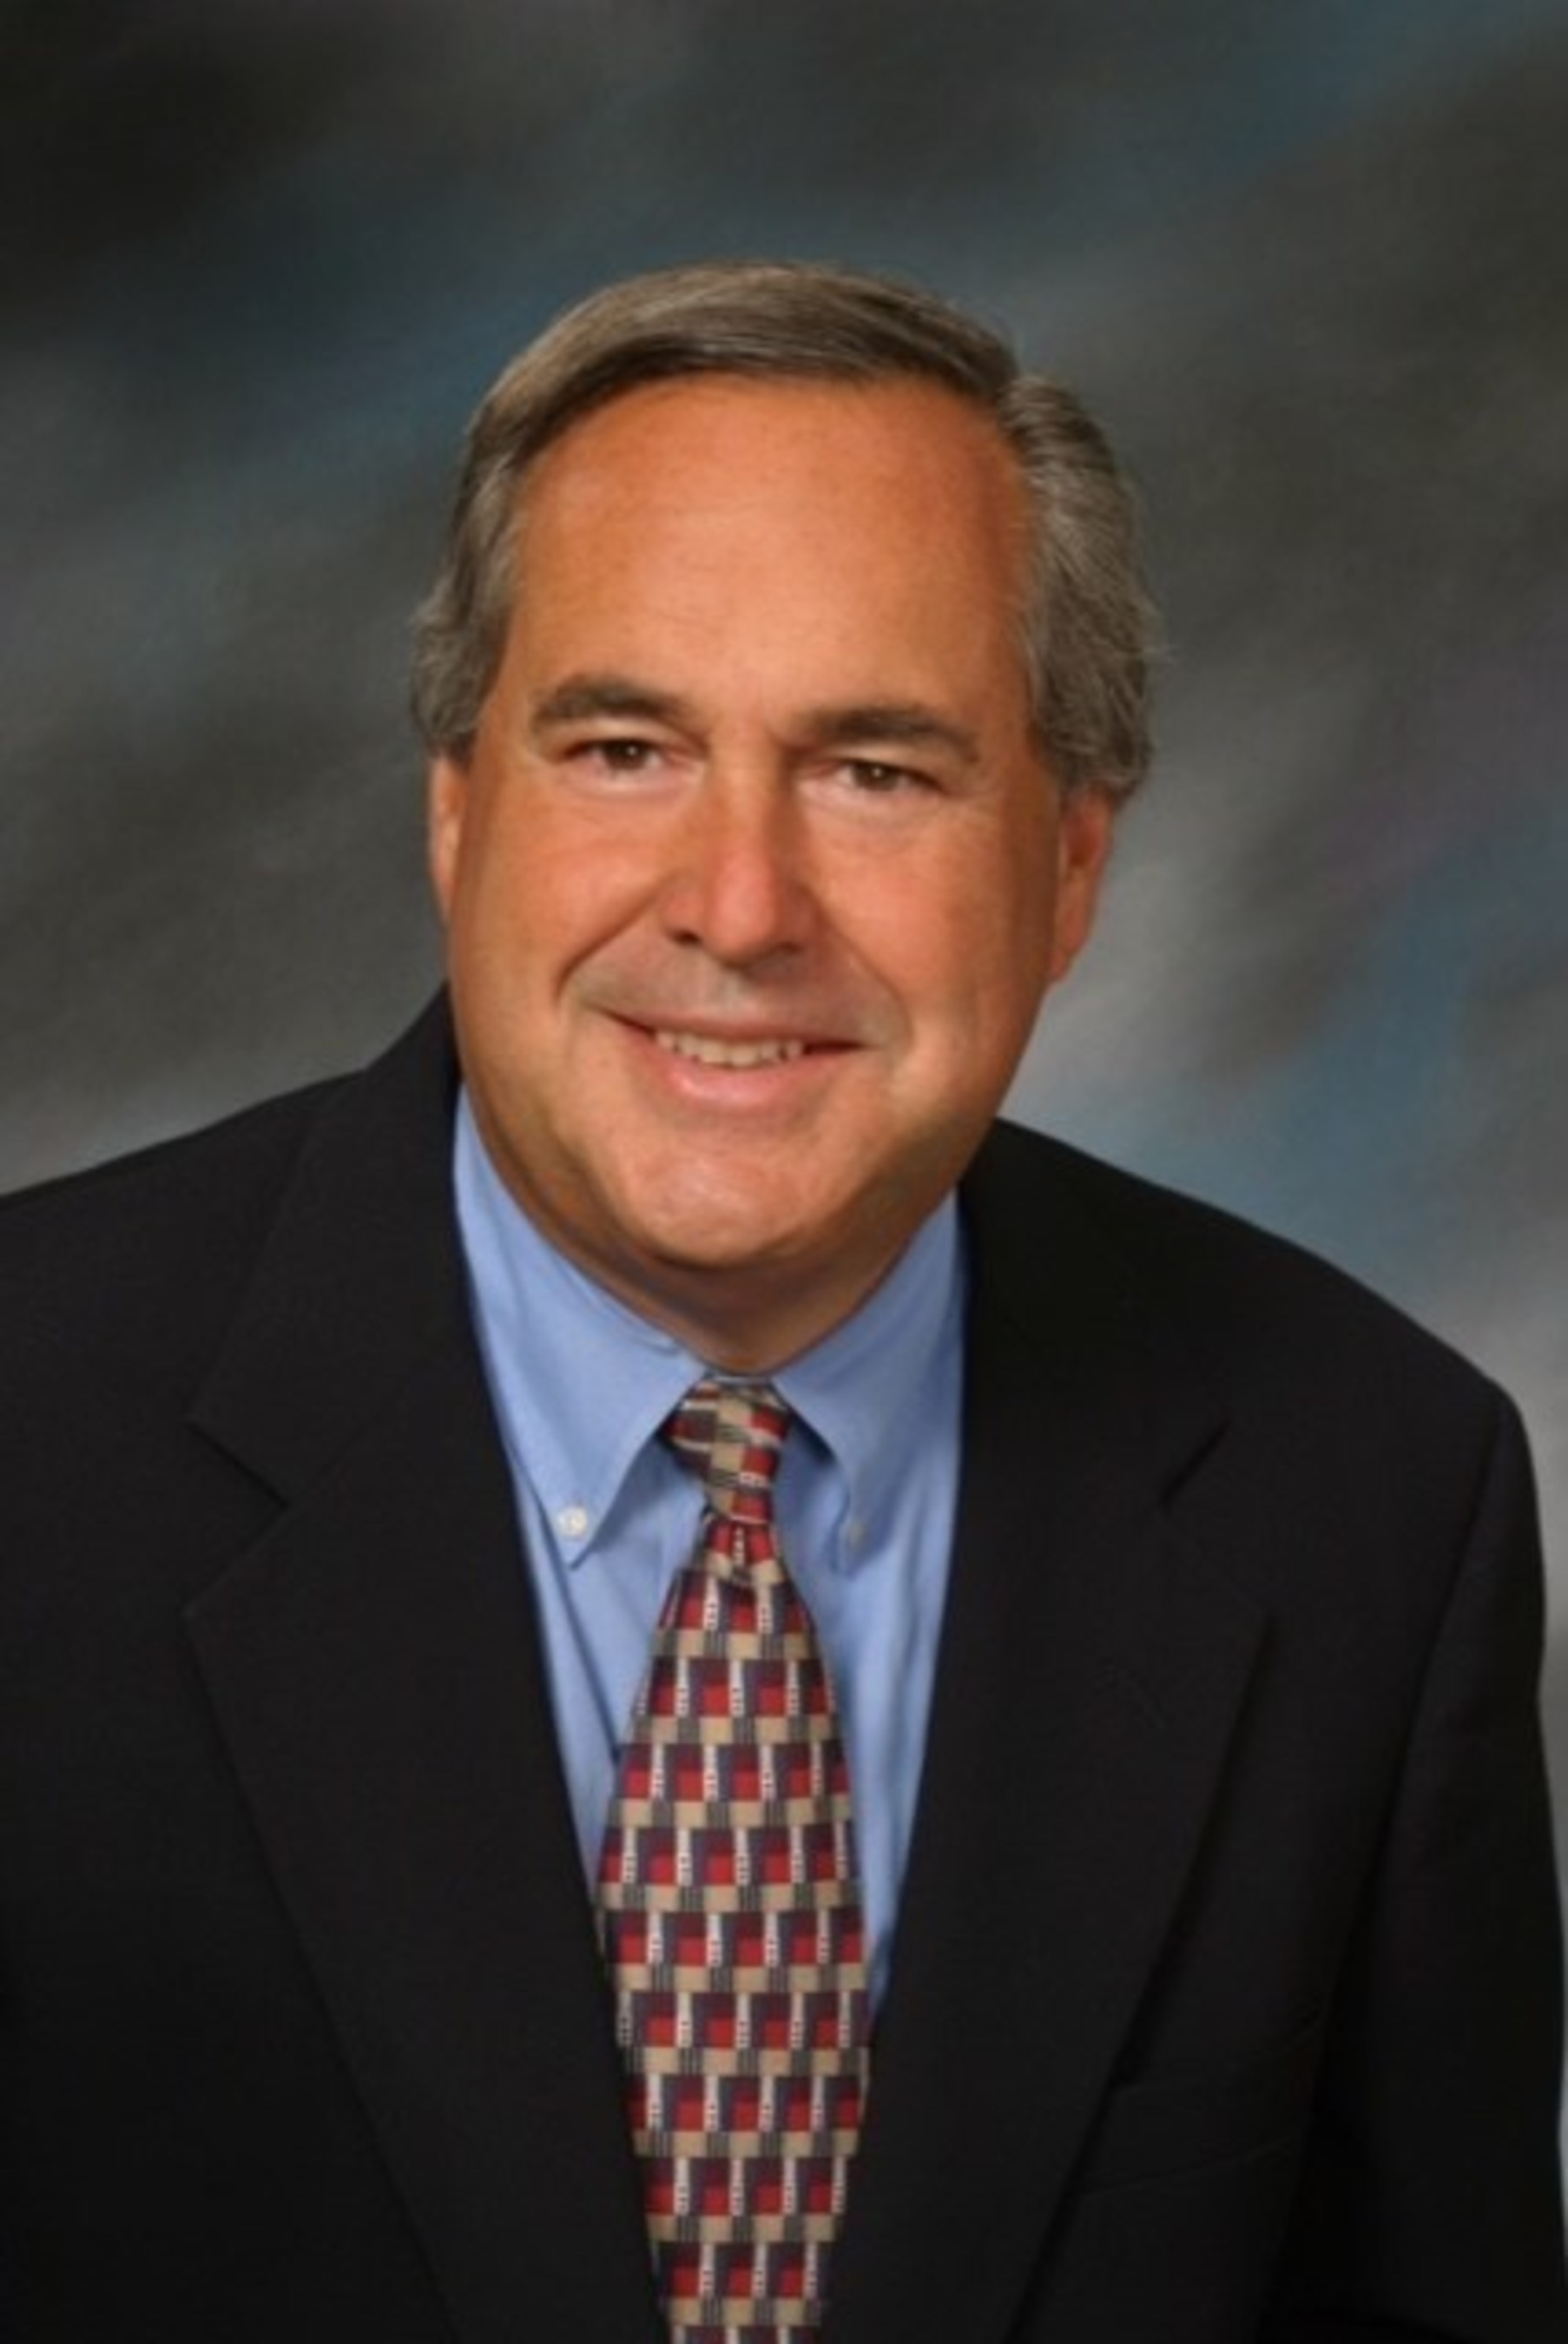 Robert J. Simione, Managing Principal, Simione Healthcare Consultants is the 2016 recipient of Martha Esposito Award for distinguished service from the Home Care & Hospice Association of New Jersey.